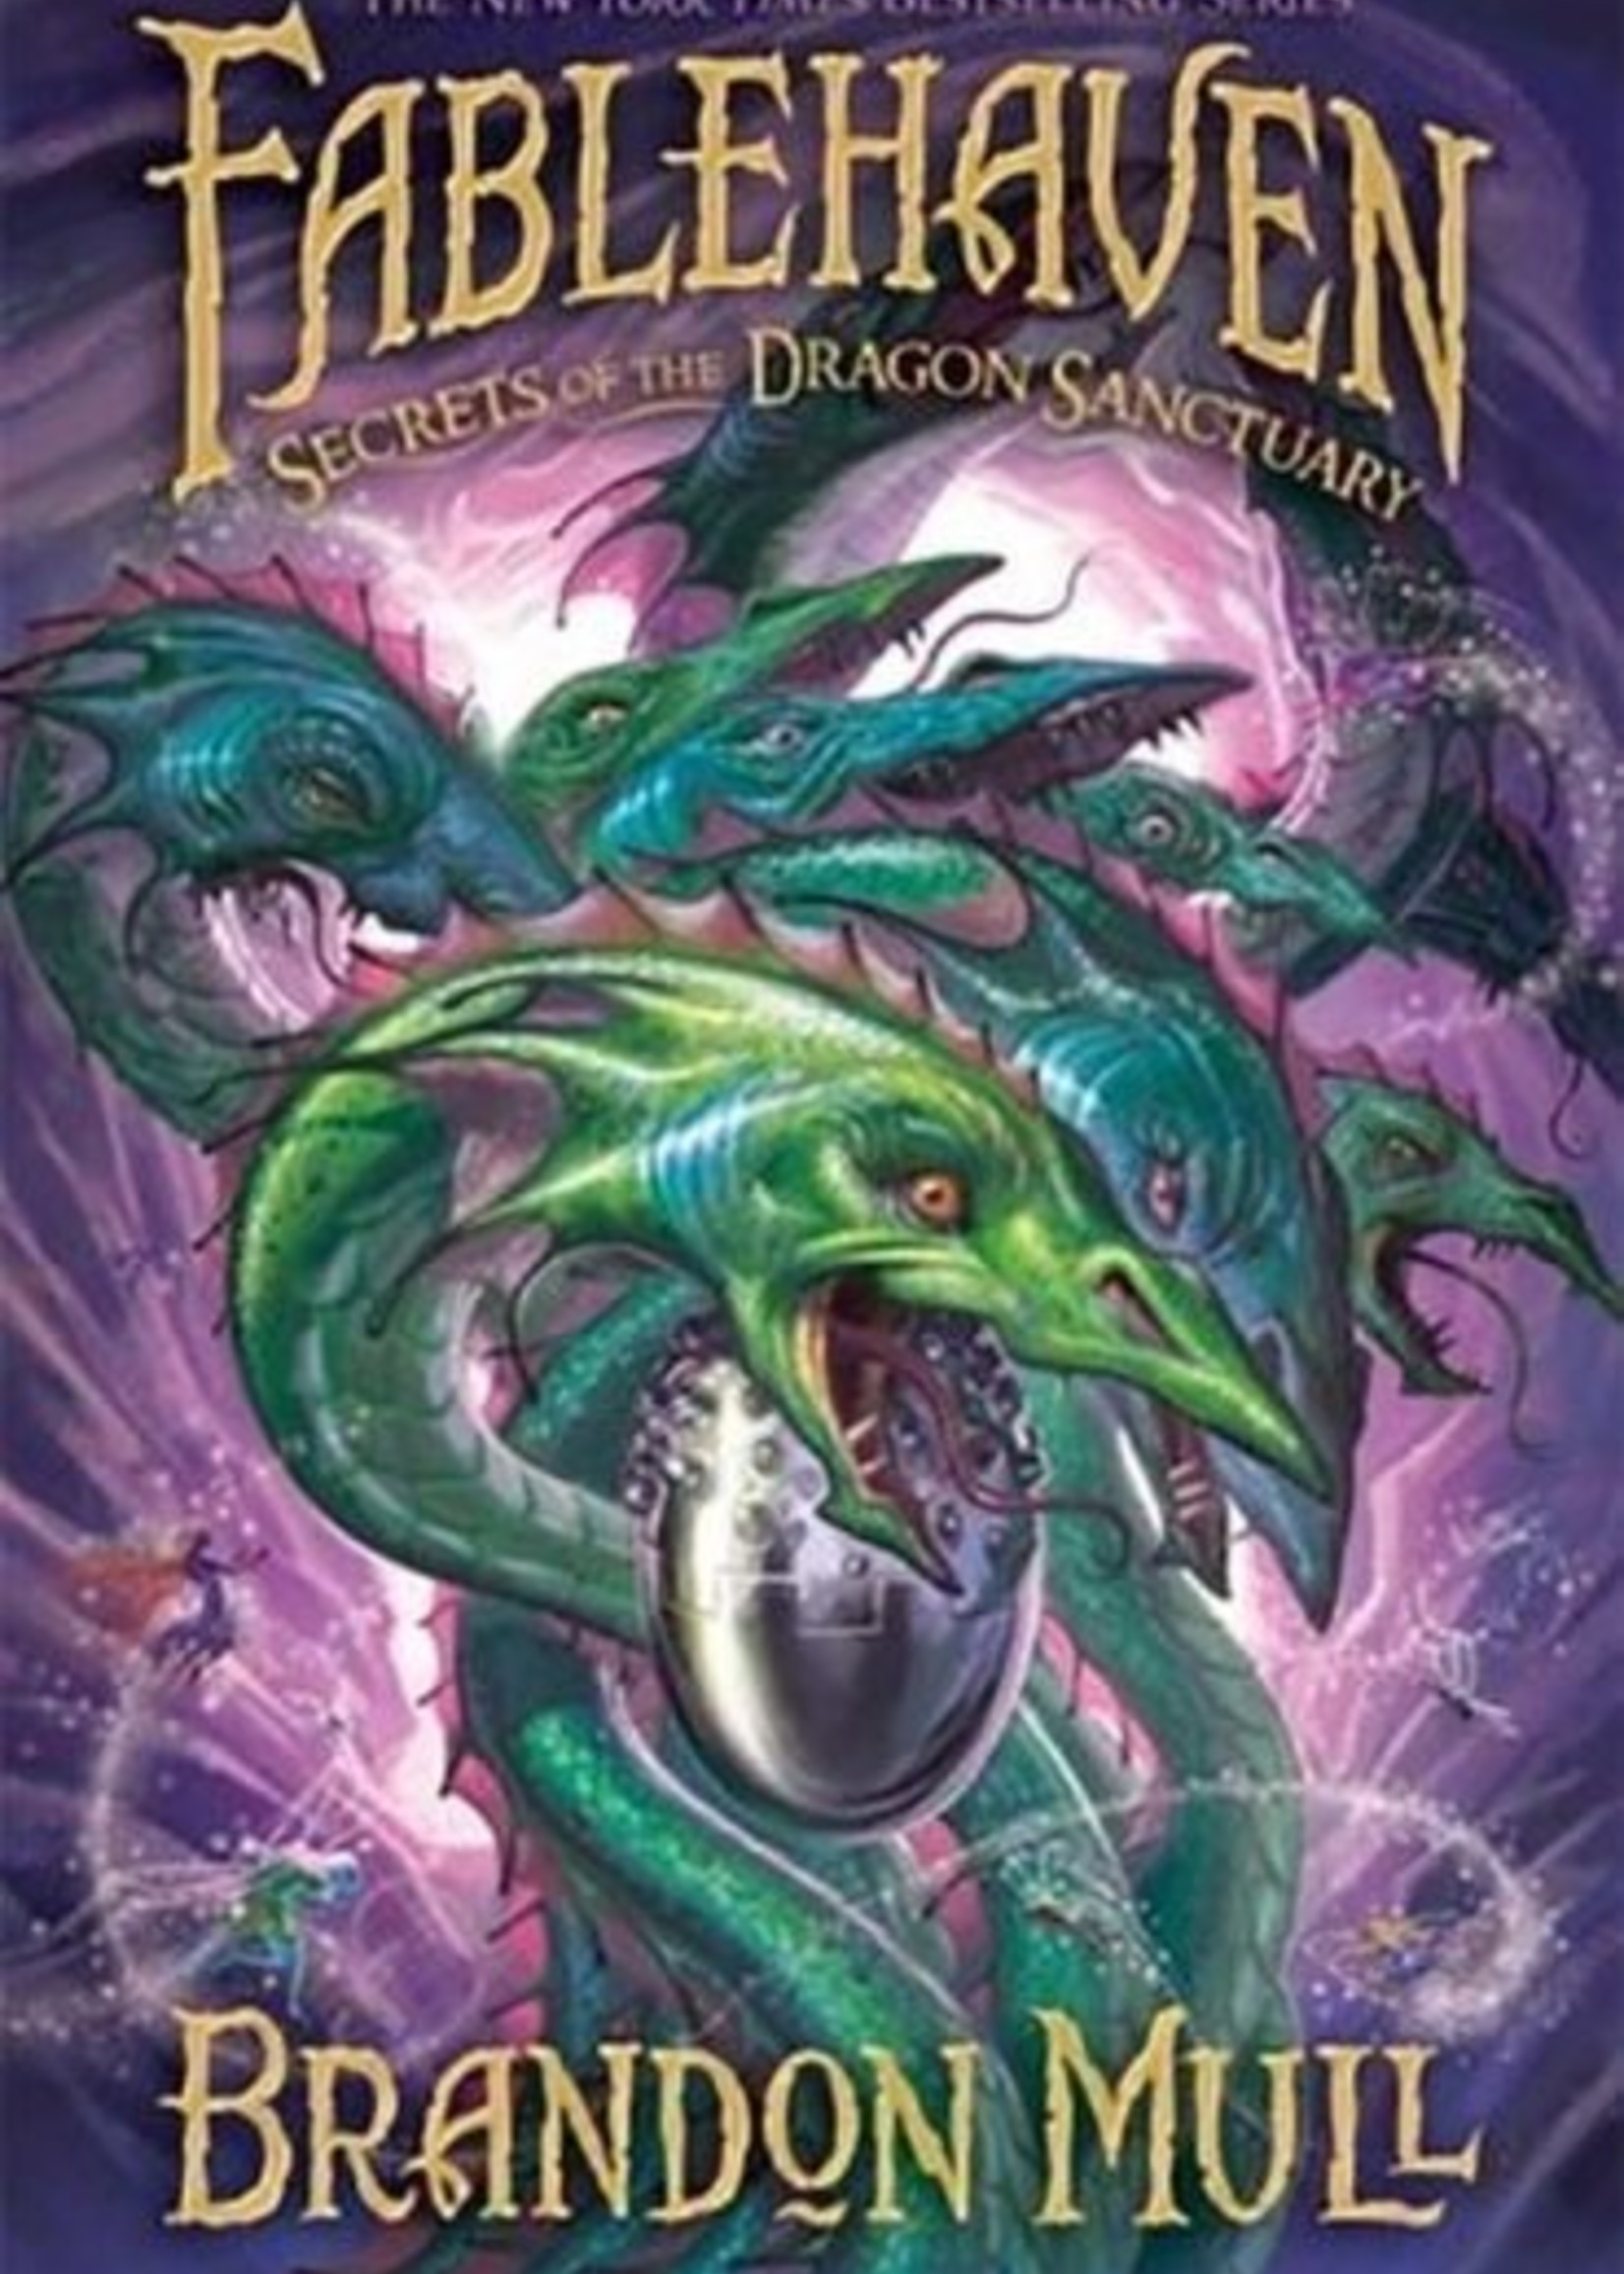 Fablehaven #04, Secrets of the Dragon Sanctuary - Hardcover